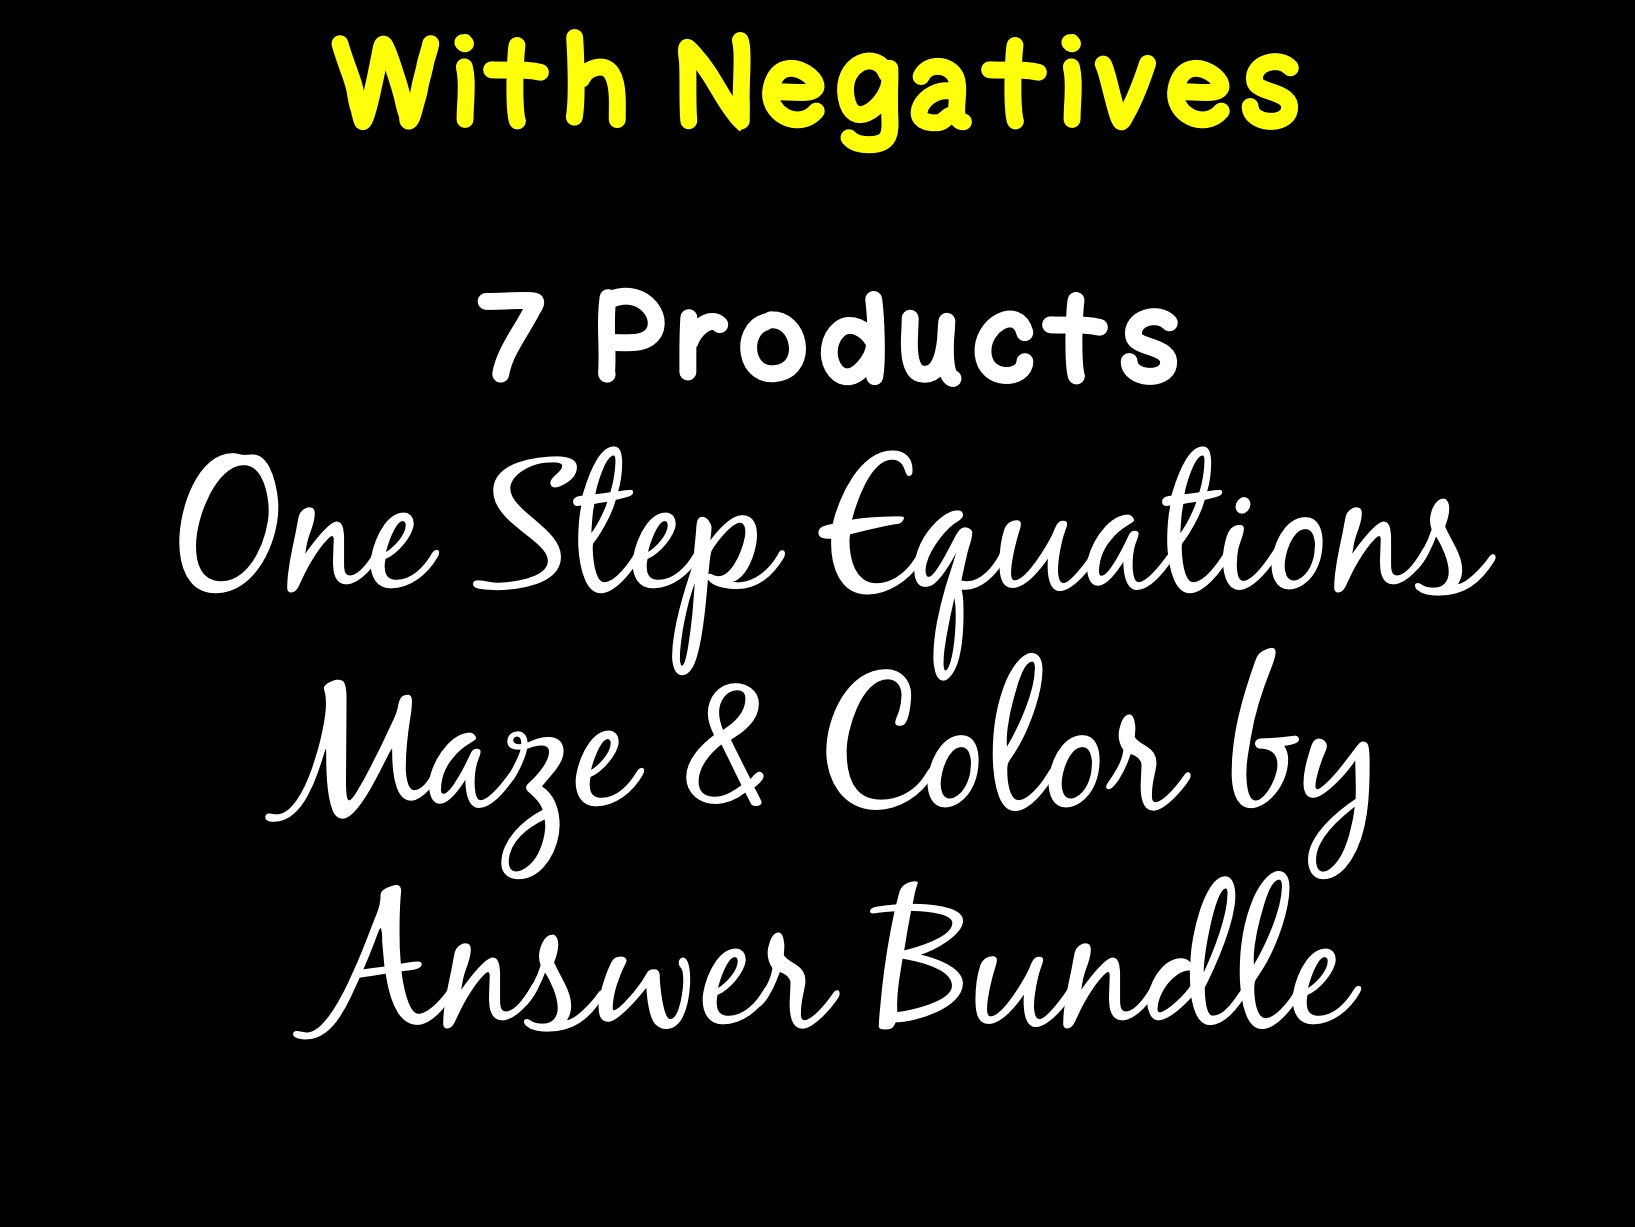 Solving Equations One Step Equations With Negatives Maze & Color by Answer Bundle